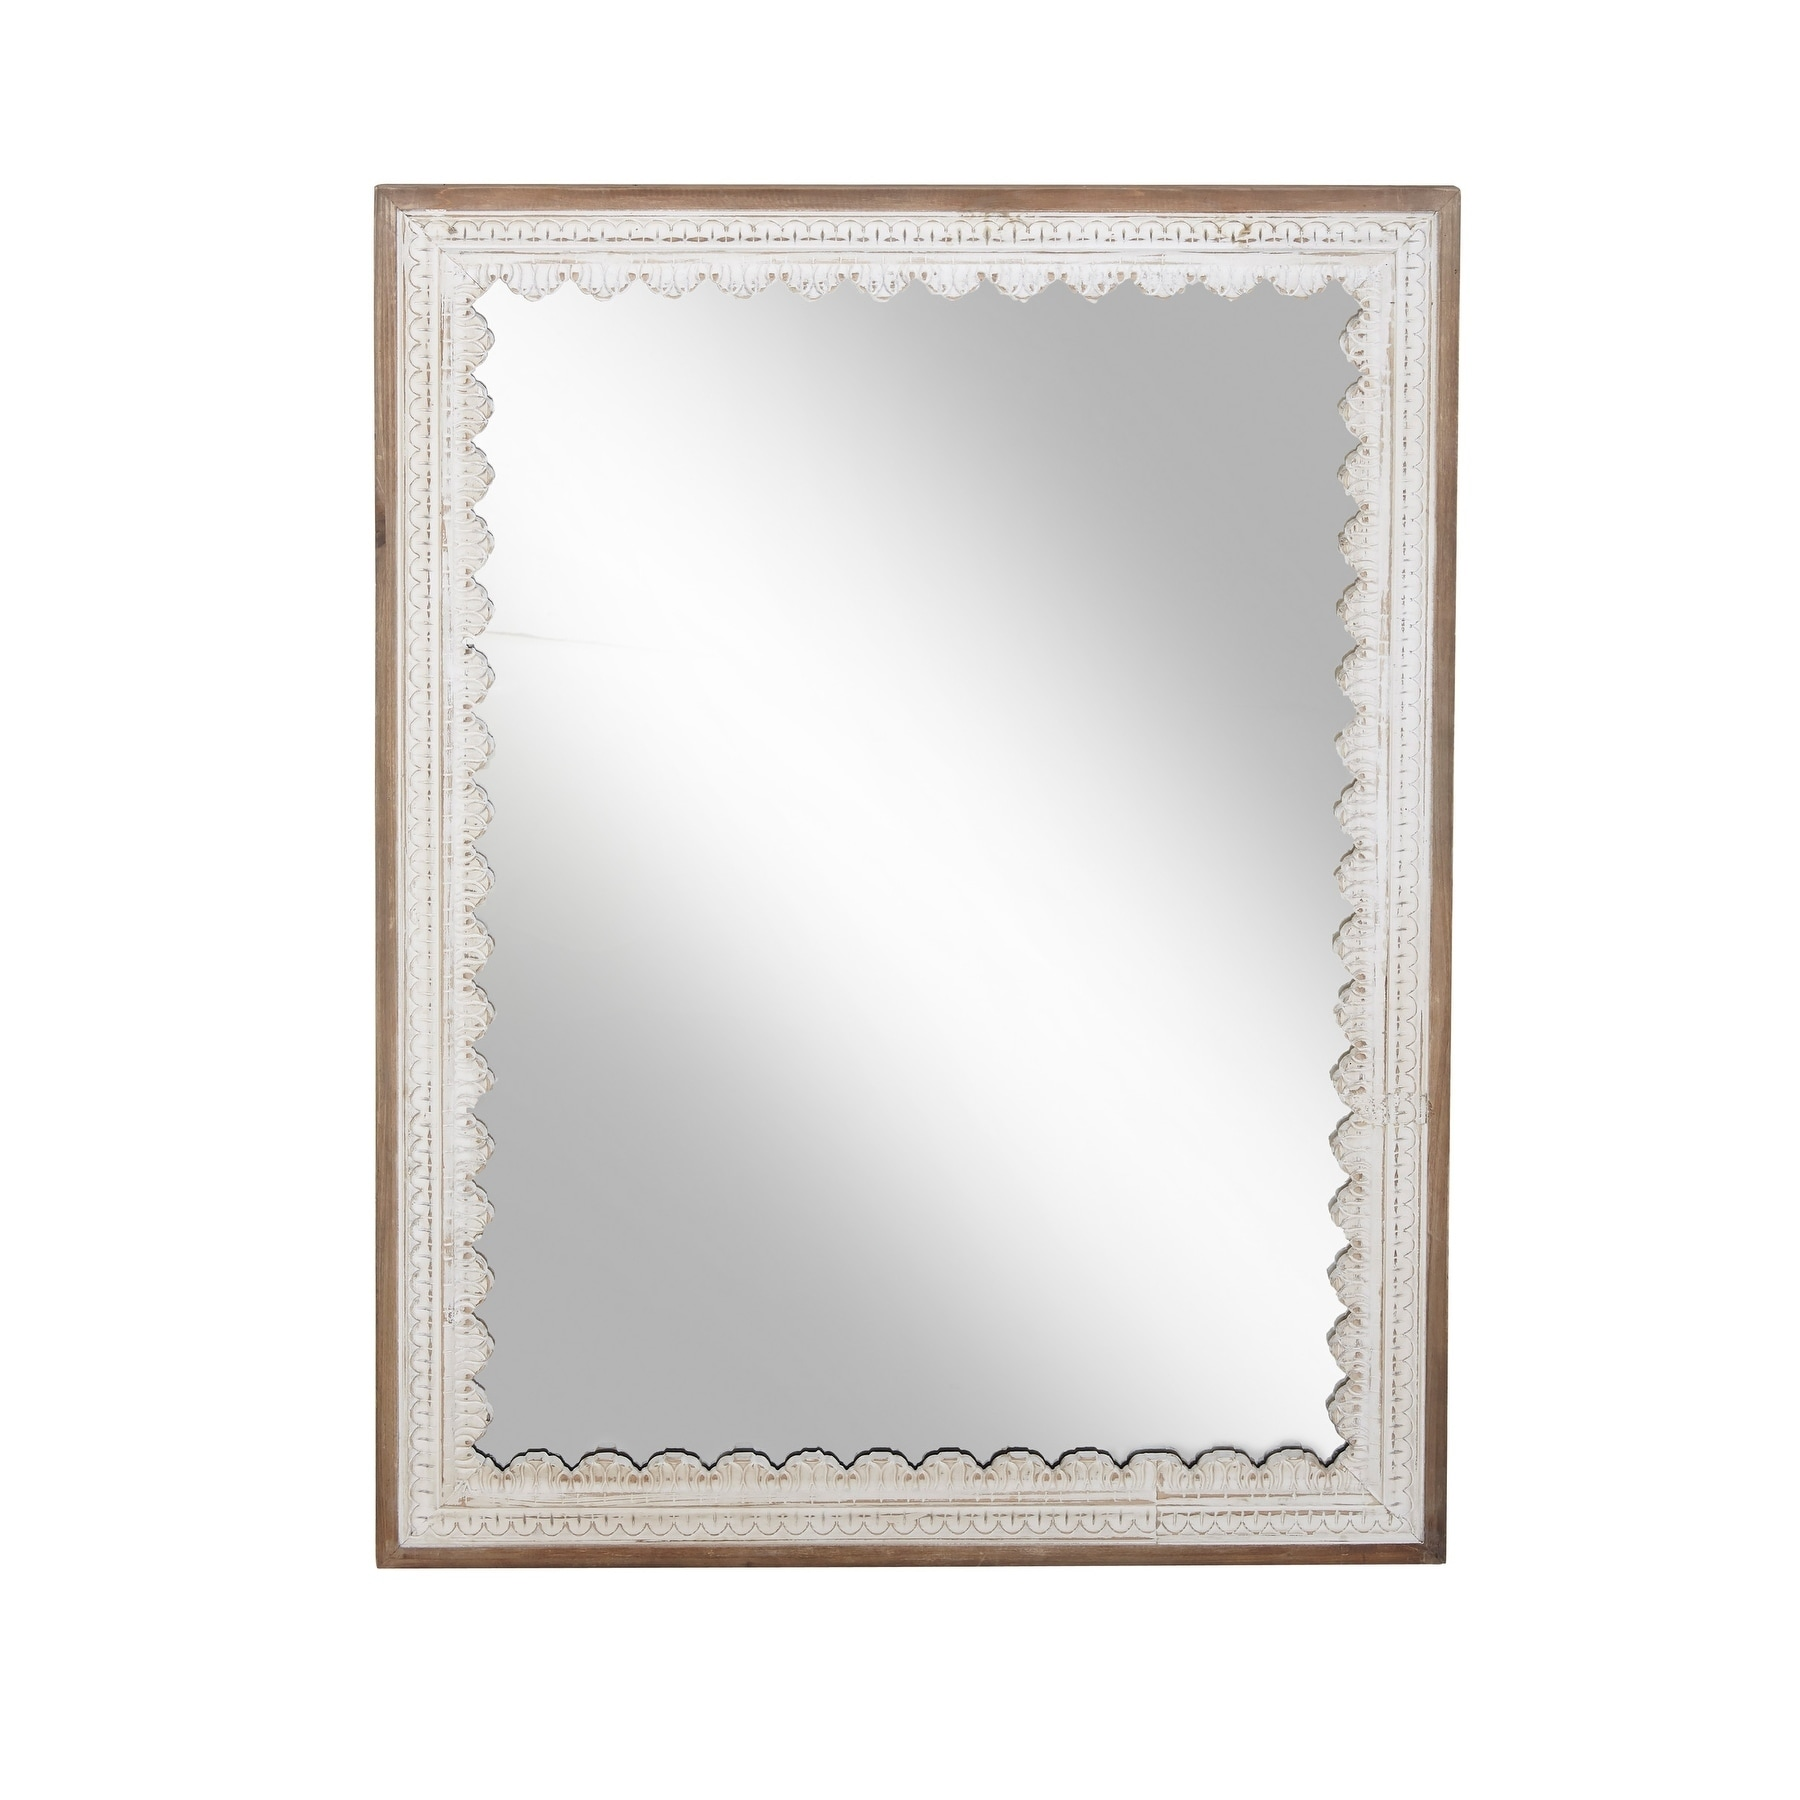 Modern 48 X 36 Inch Rectangular Wooden Framed Wall Mirror Brown Free Shipping Today 20460384